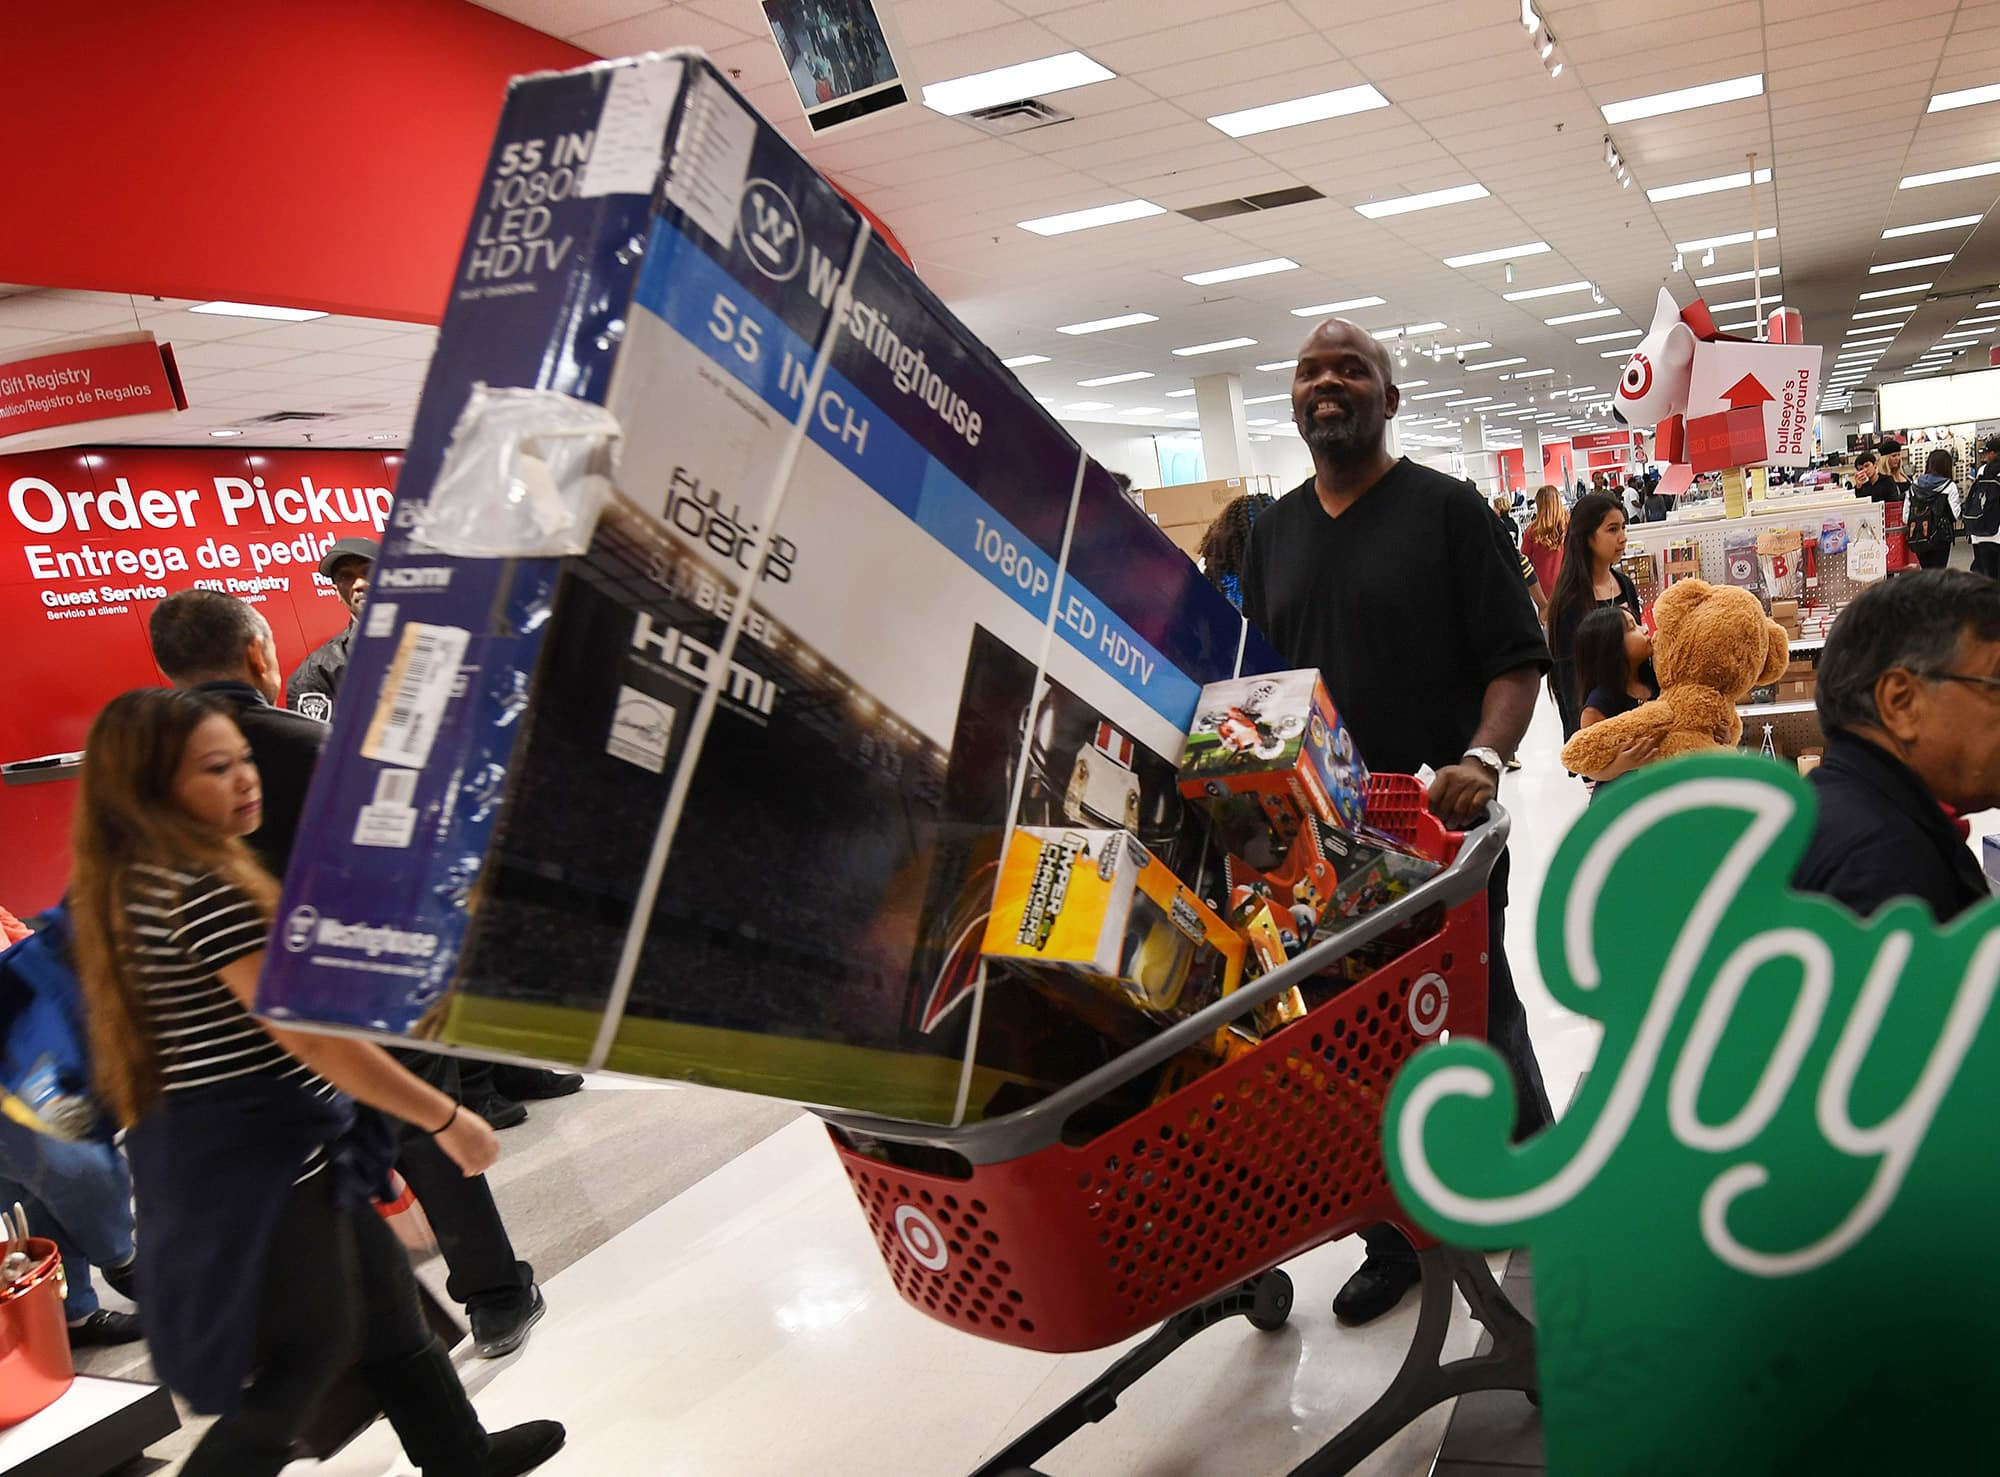 Shoppers push loaded up carts at a Target store in Culver City, California.